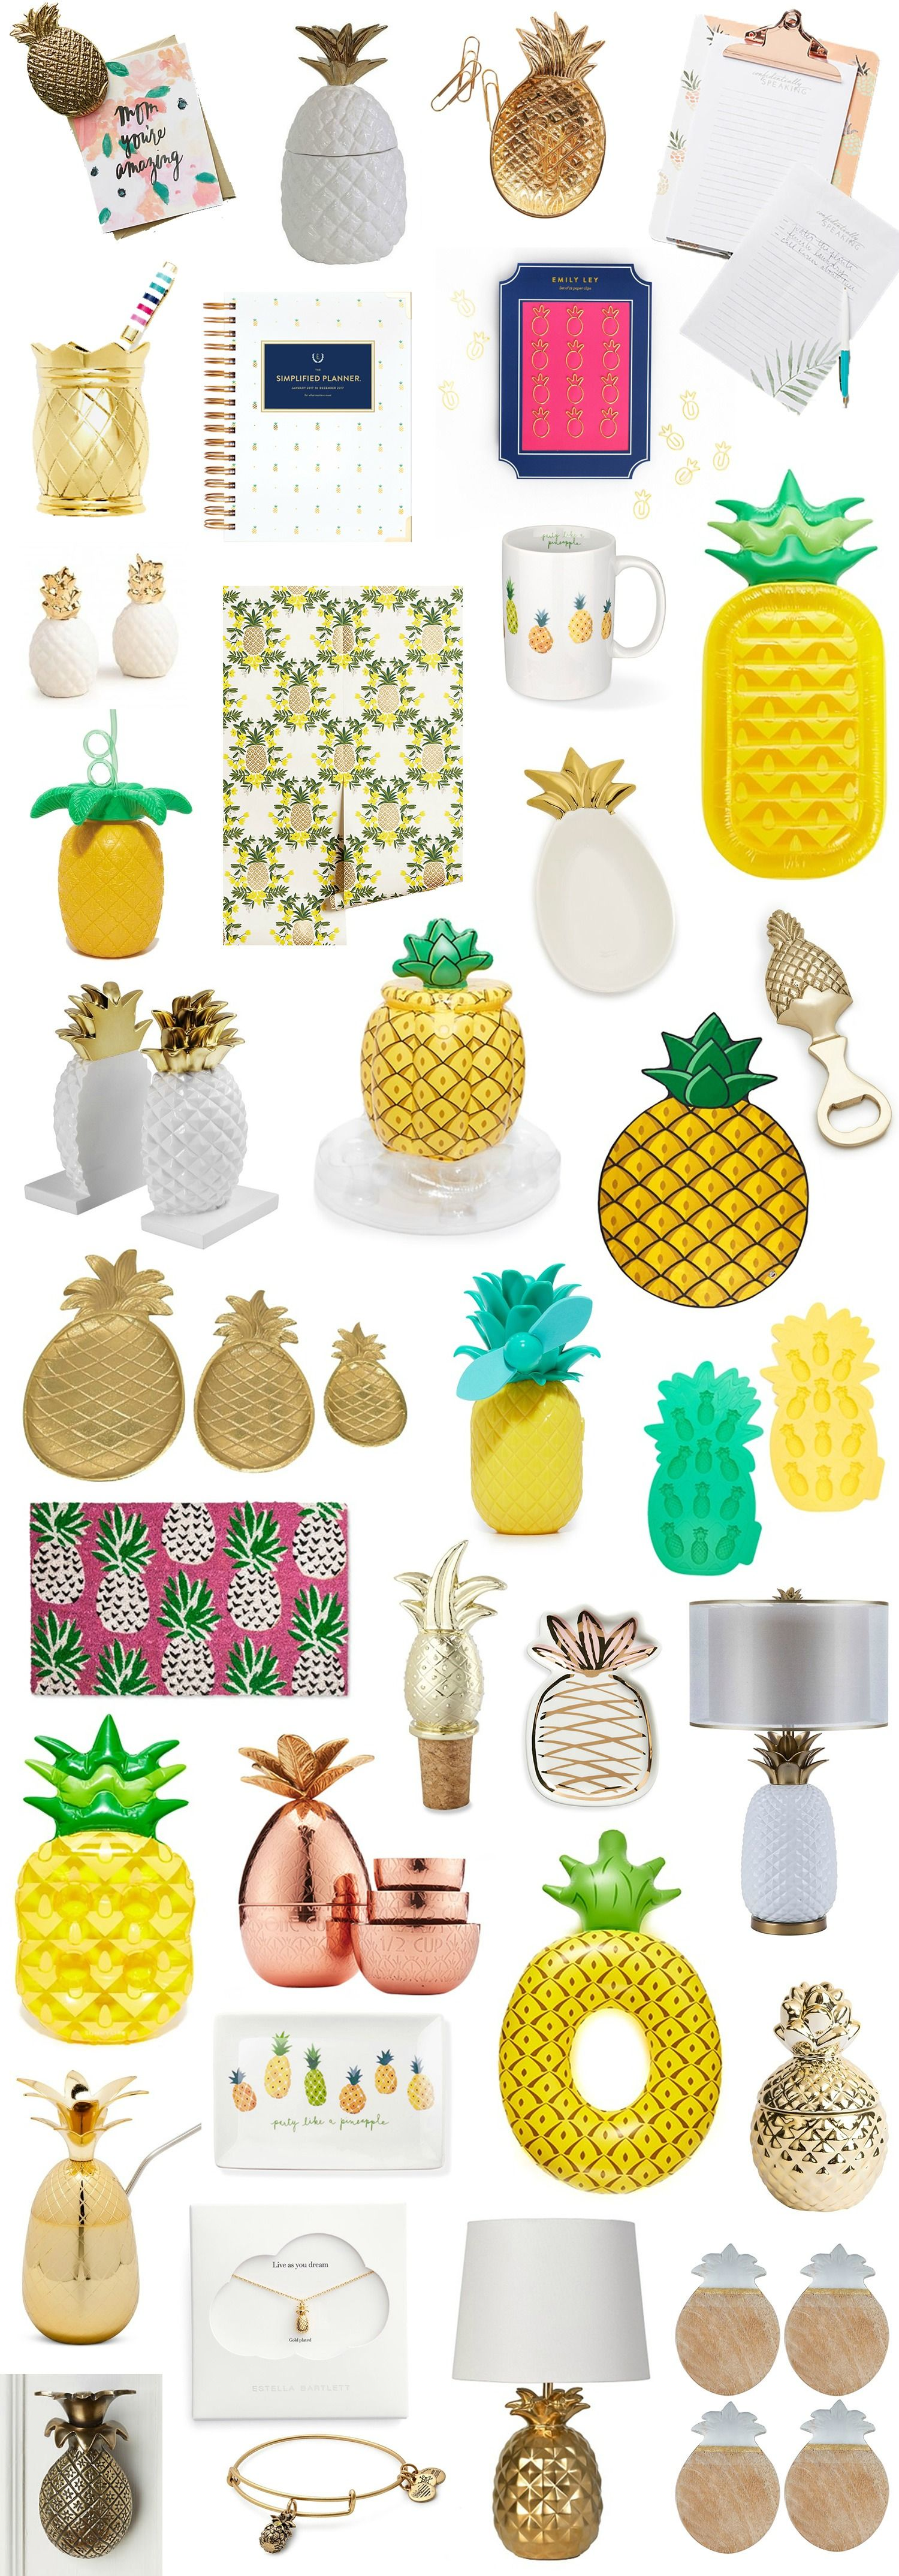 If It S Shaped Like A Pineapple I Need It Here S A Round Up Of The Best Pineapple Home Decor Office Items And Gift Pineapple Room Cute Pineapple Pineapple